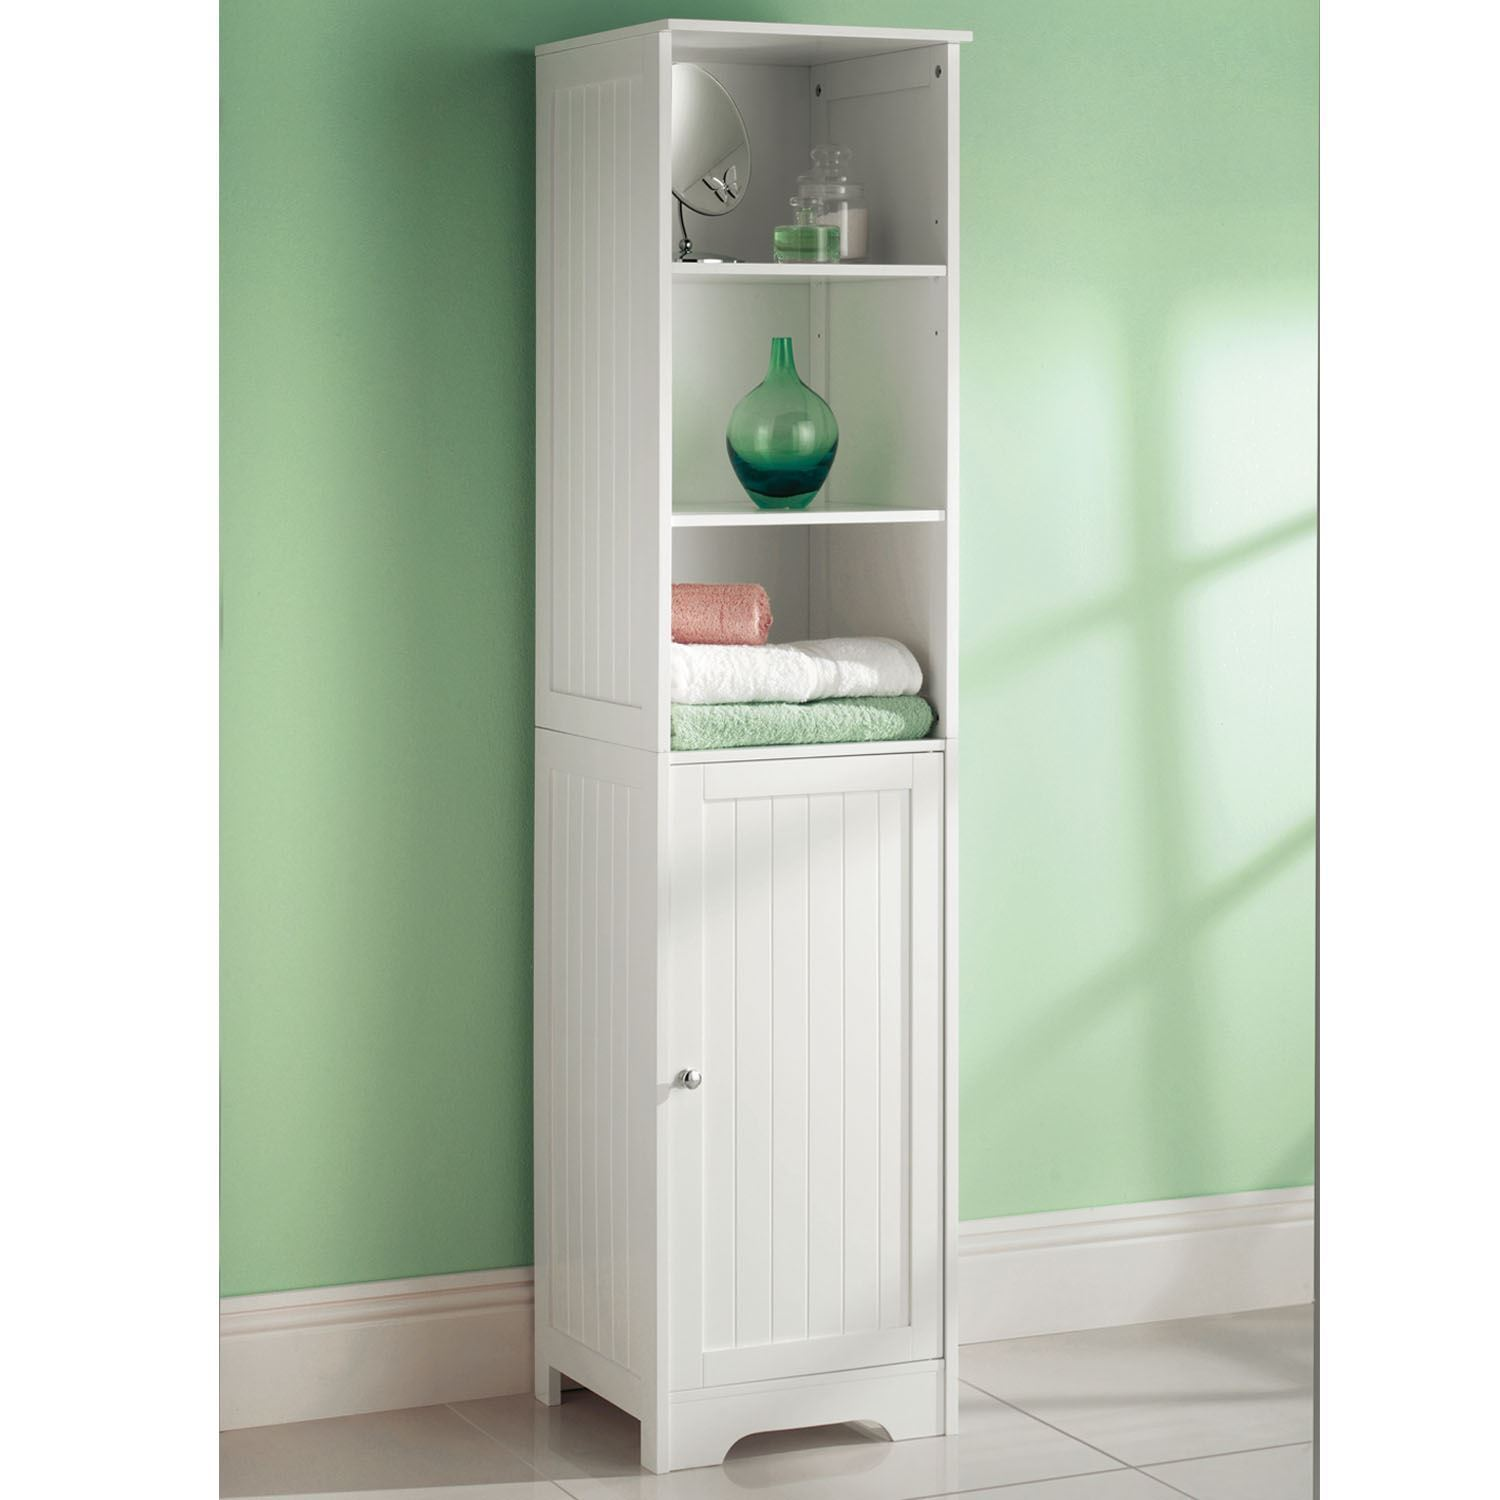 Http Www Ebay Co Uk Itm Wooden Tall Boy Free Standing Bathroom Storage Cabinet Shelf Shelving Unit White 272028816075 Hash Item3f562e52cb G Zp8aaosw Bfwhmod